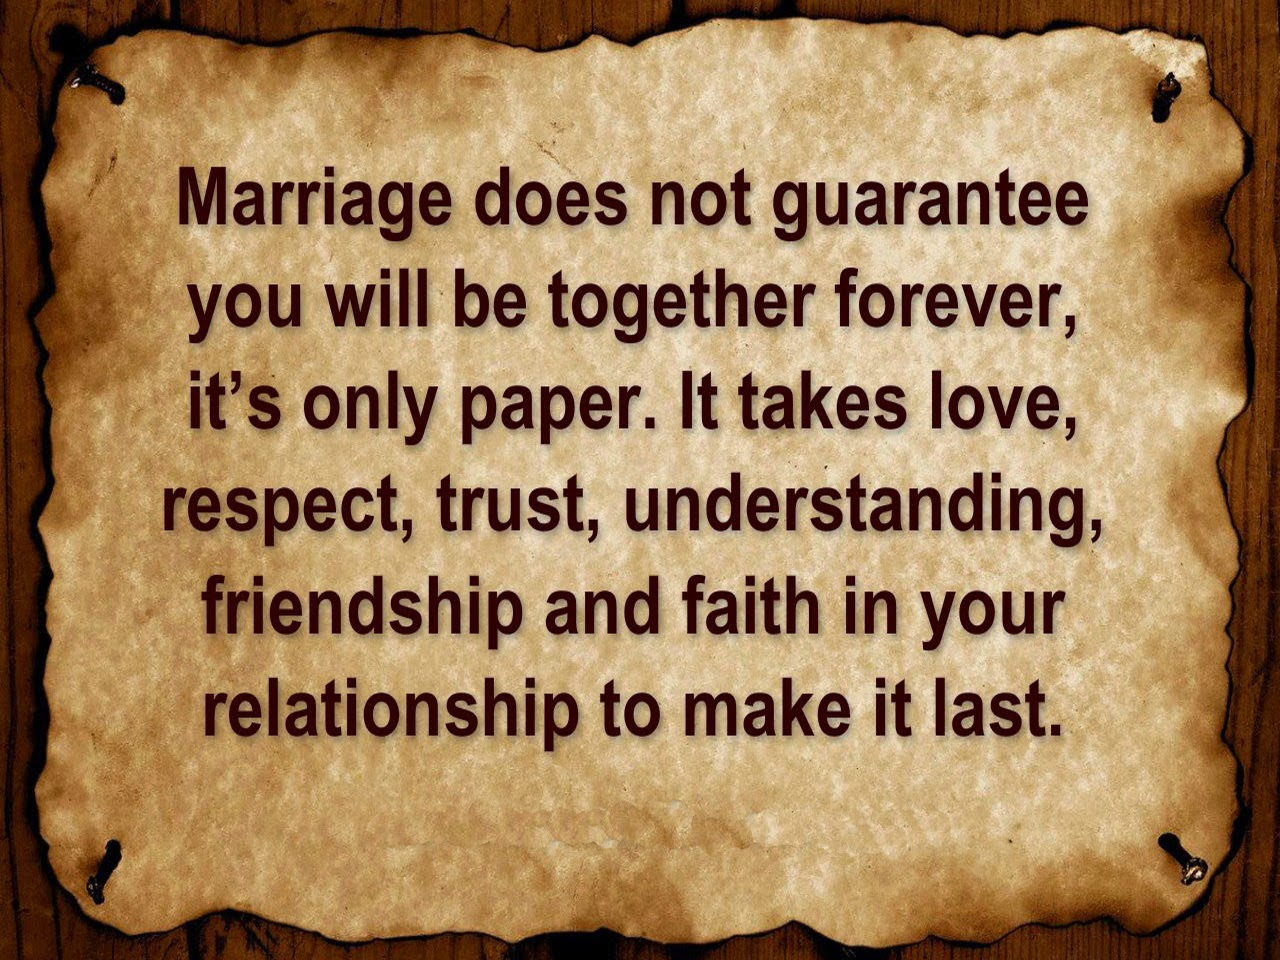 """Marriage does not guarantee you will be to her forever"